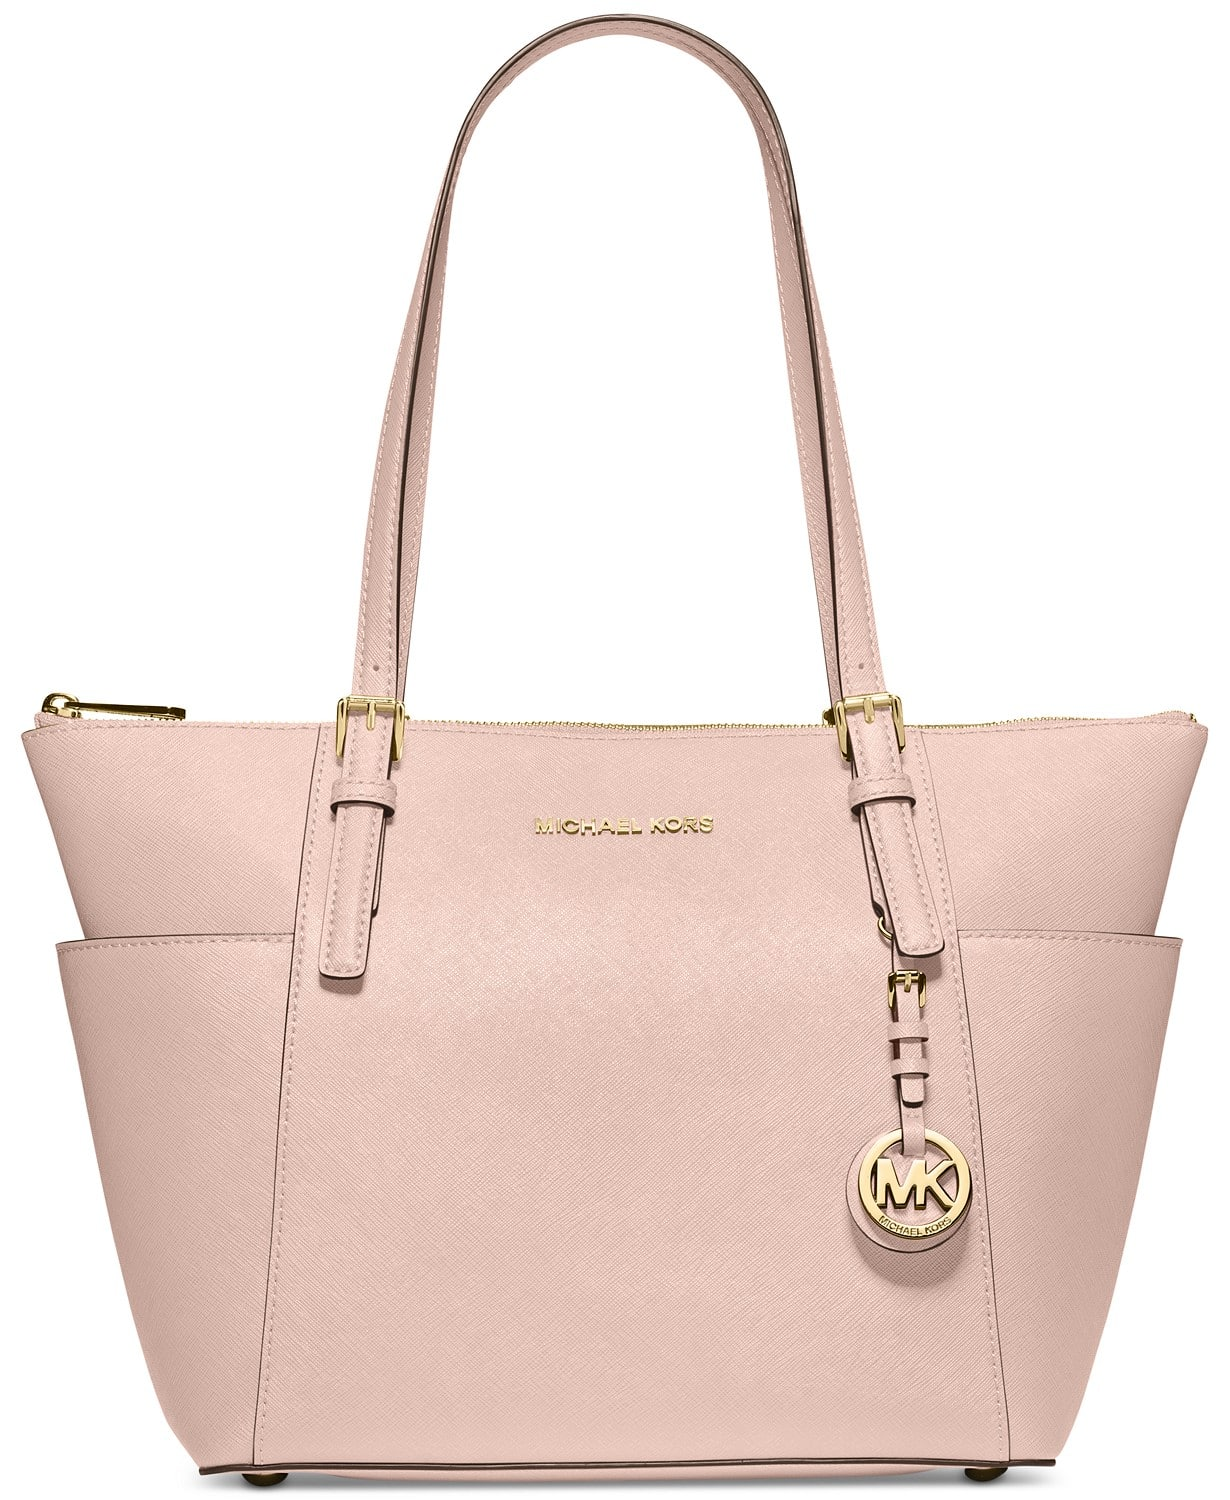 Textured leather, luxe hardware and elegant contours make the Jet Set East West large tote from MICHAEL Michael Kors the ultimate travel companion for any getaway.